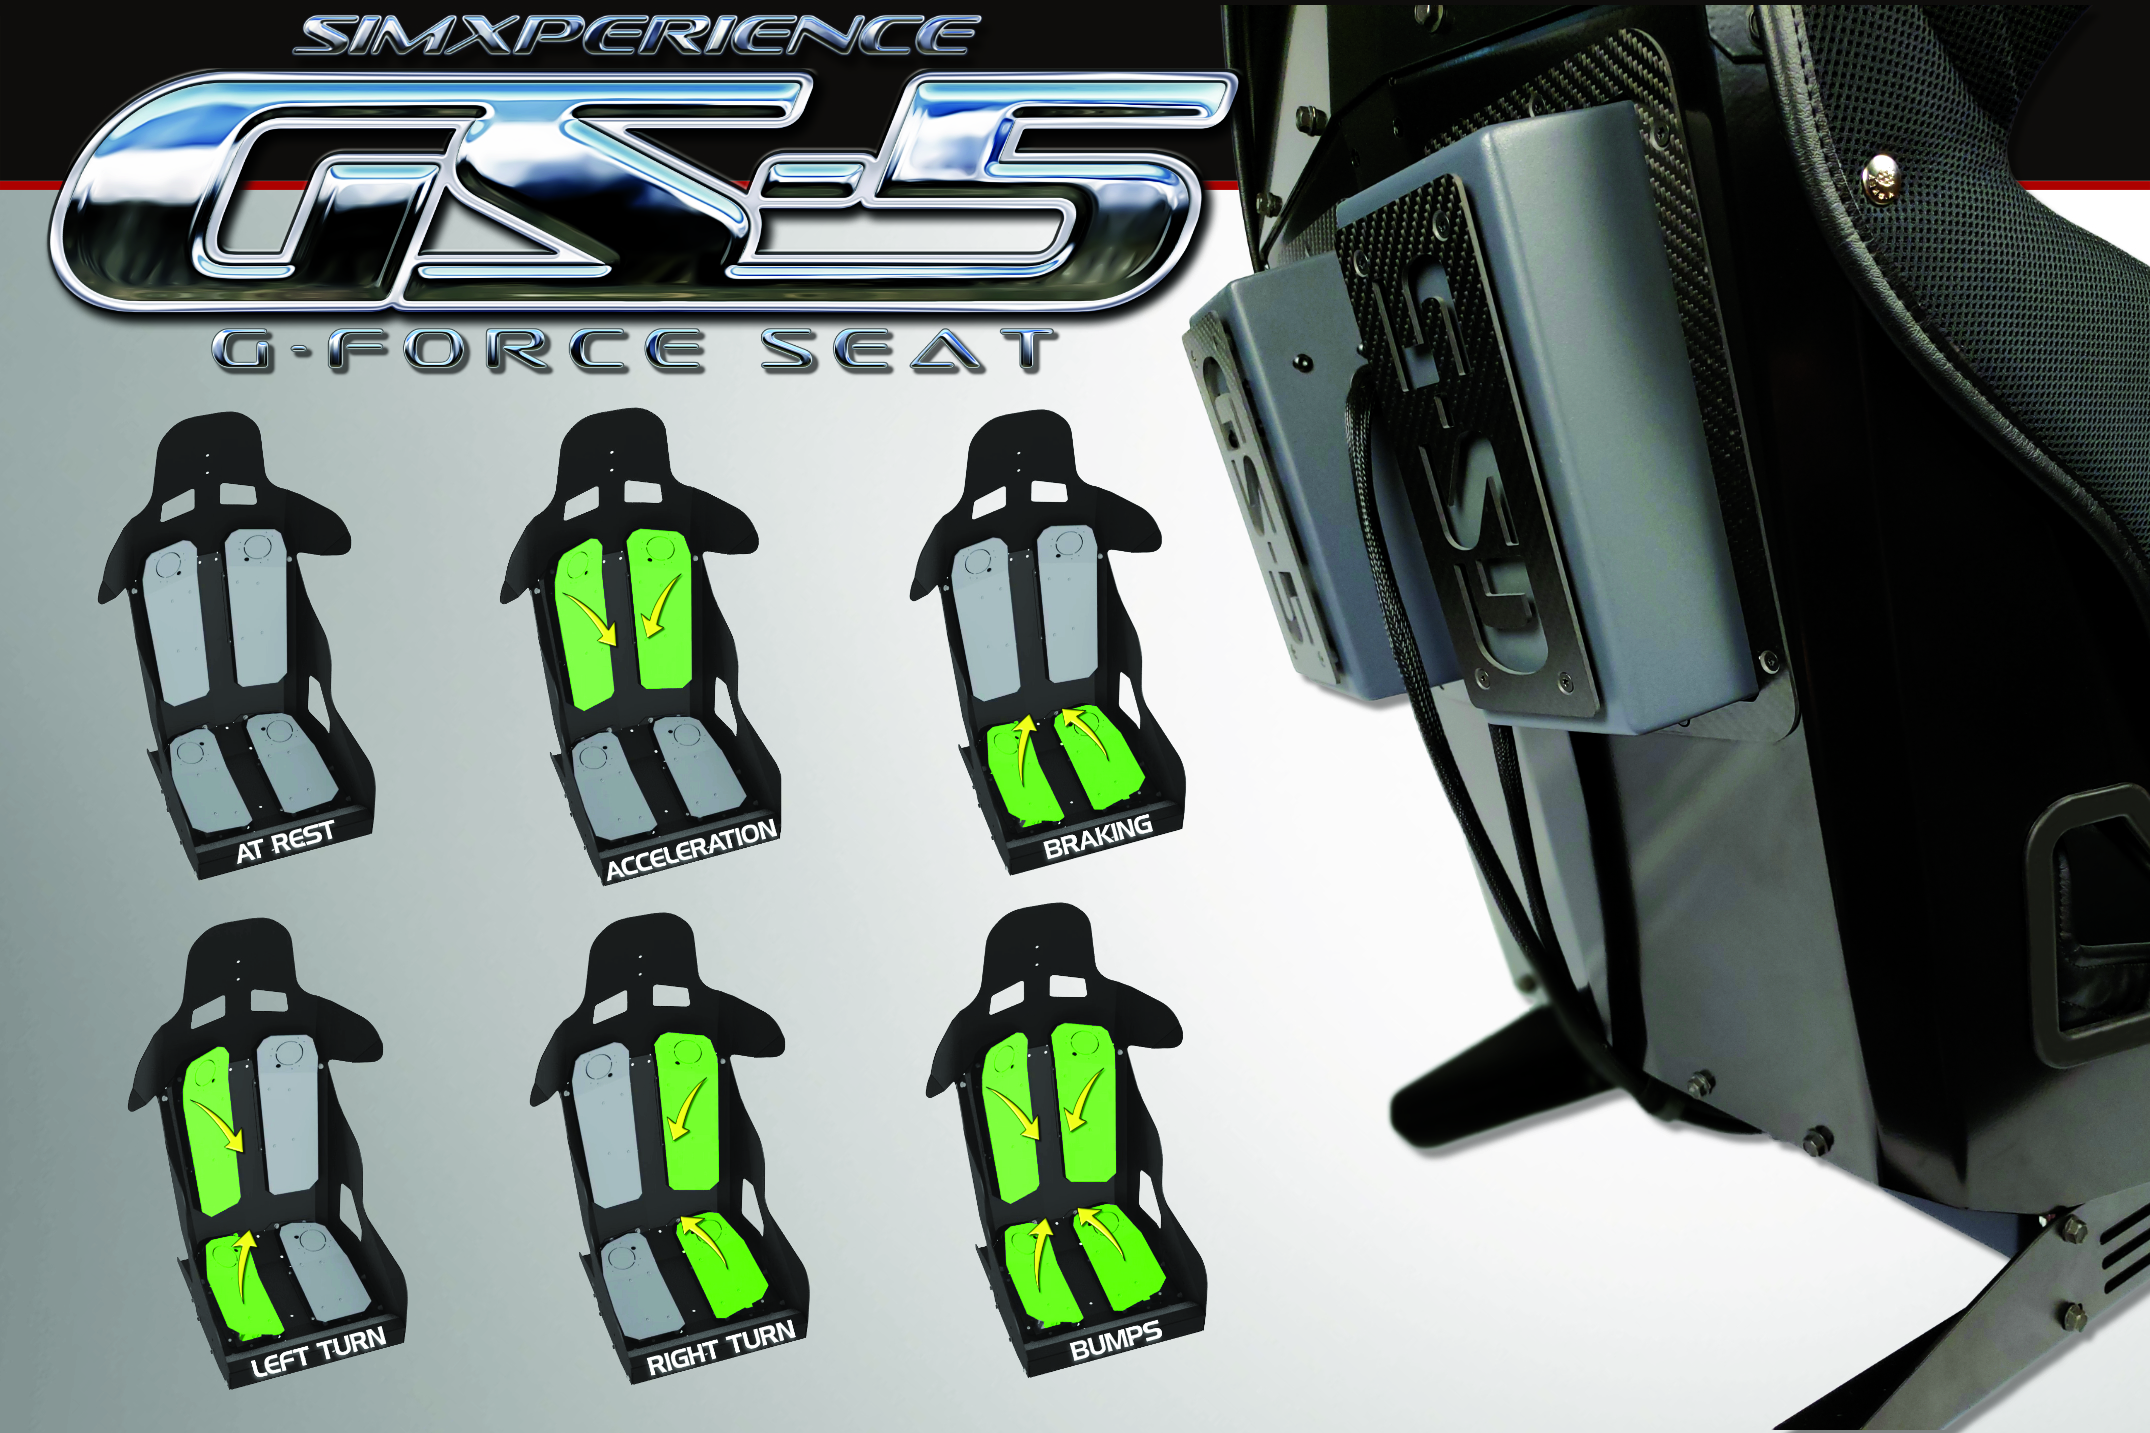 SimXperience GS-5 G-Force Seat Available Now